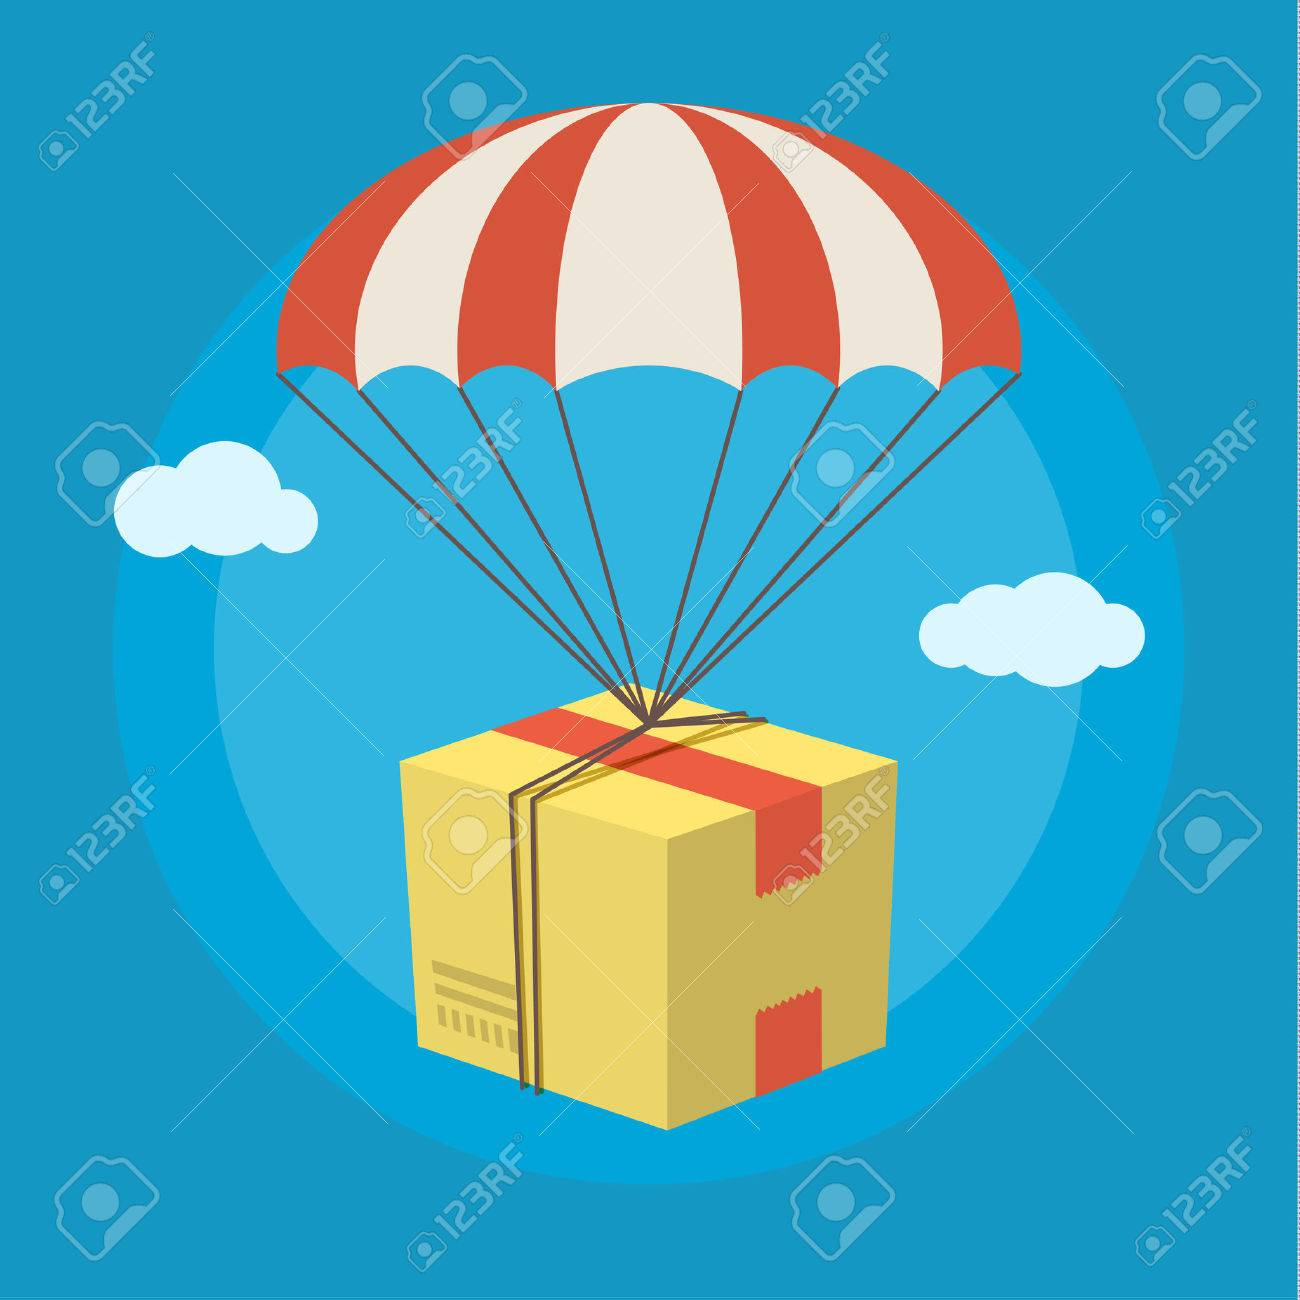 Concept for delivery service. Package flying down from sky with parachute. Flat design colored vector illustration. - 50915190